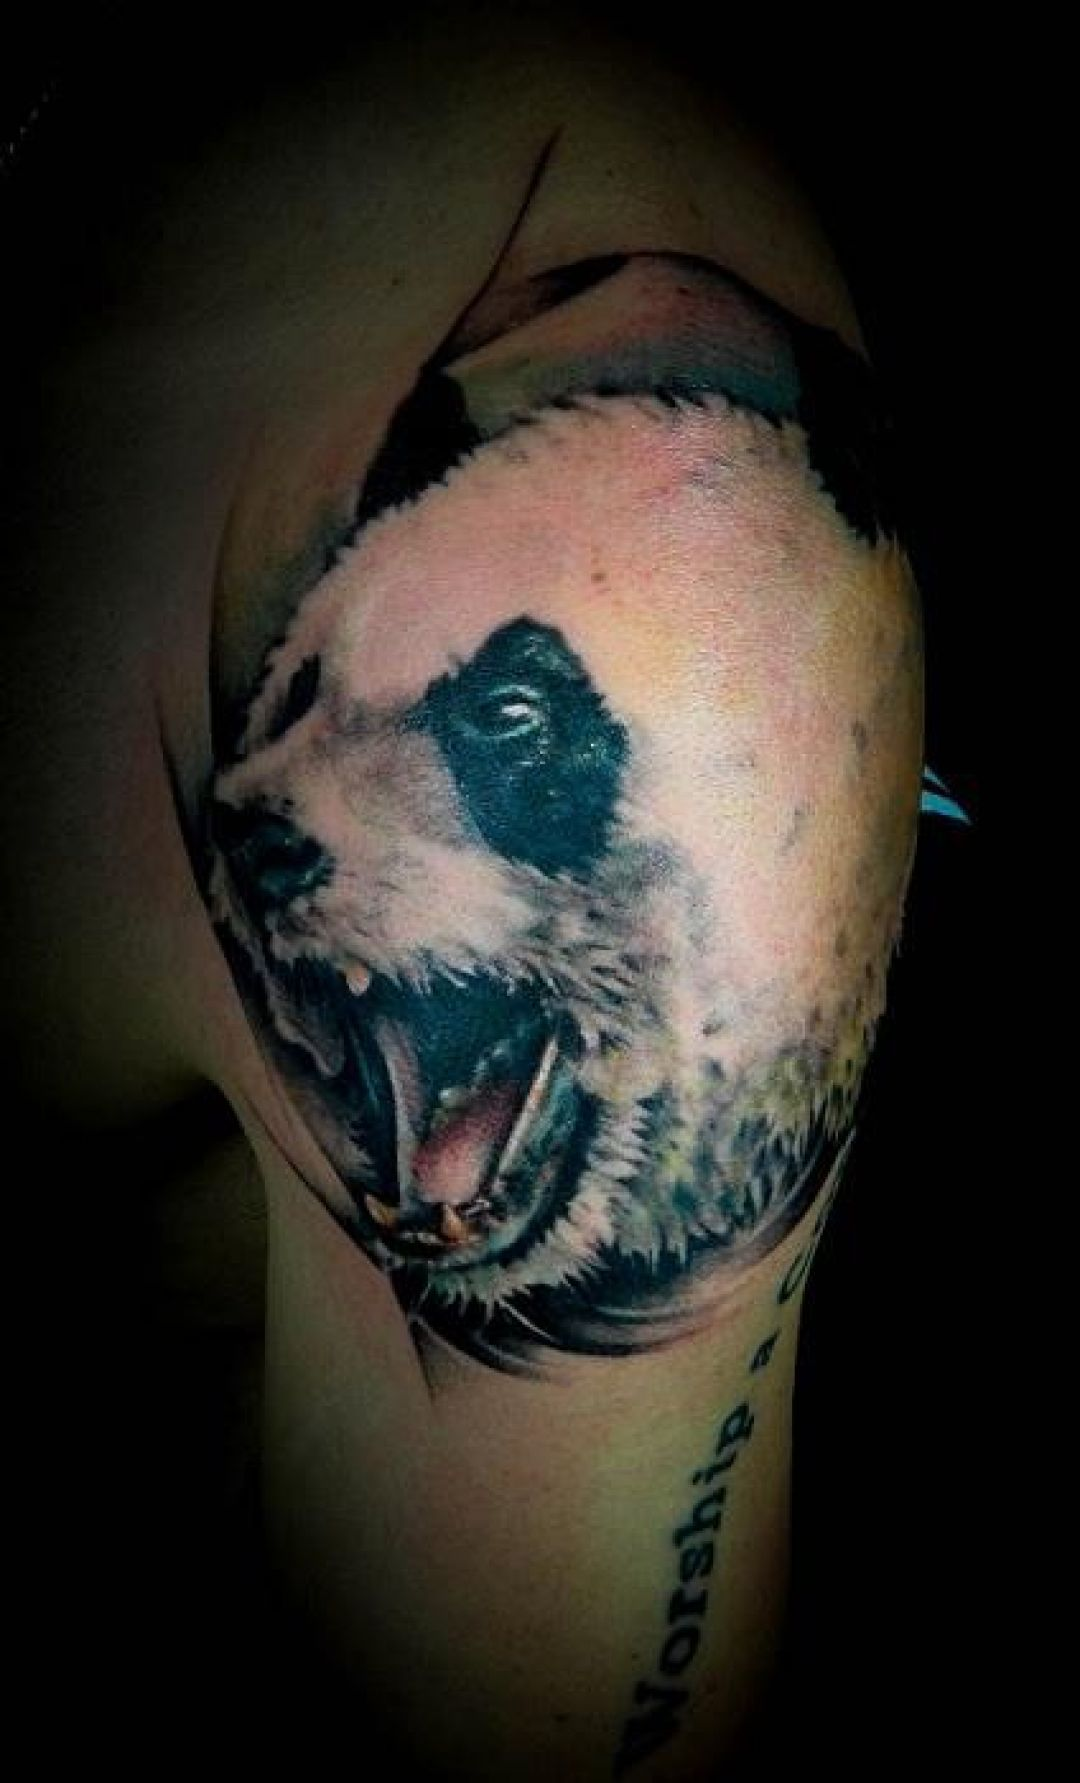 Realistic Panda Head Tattoo Design (284146) - Realistic Tattoos